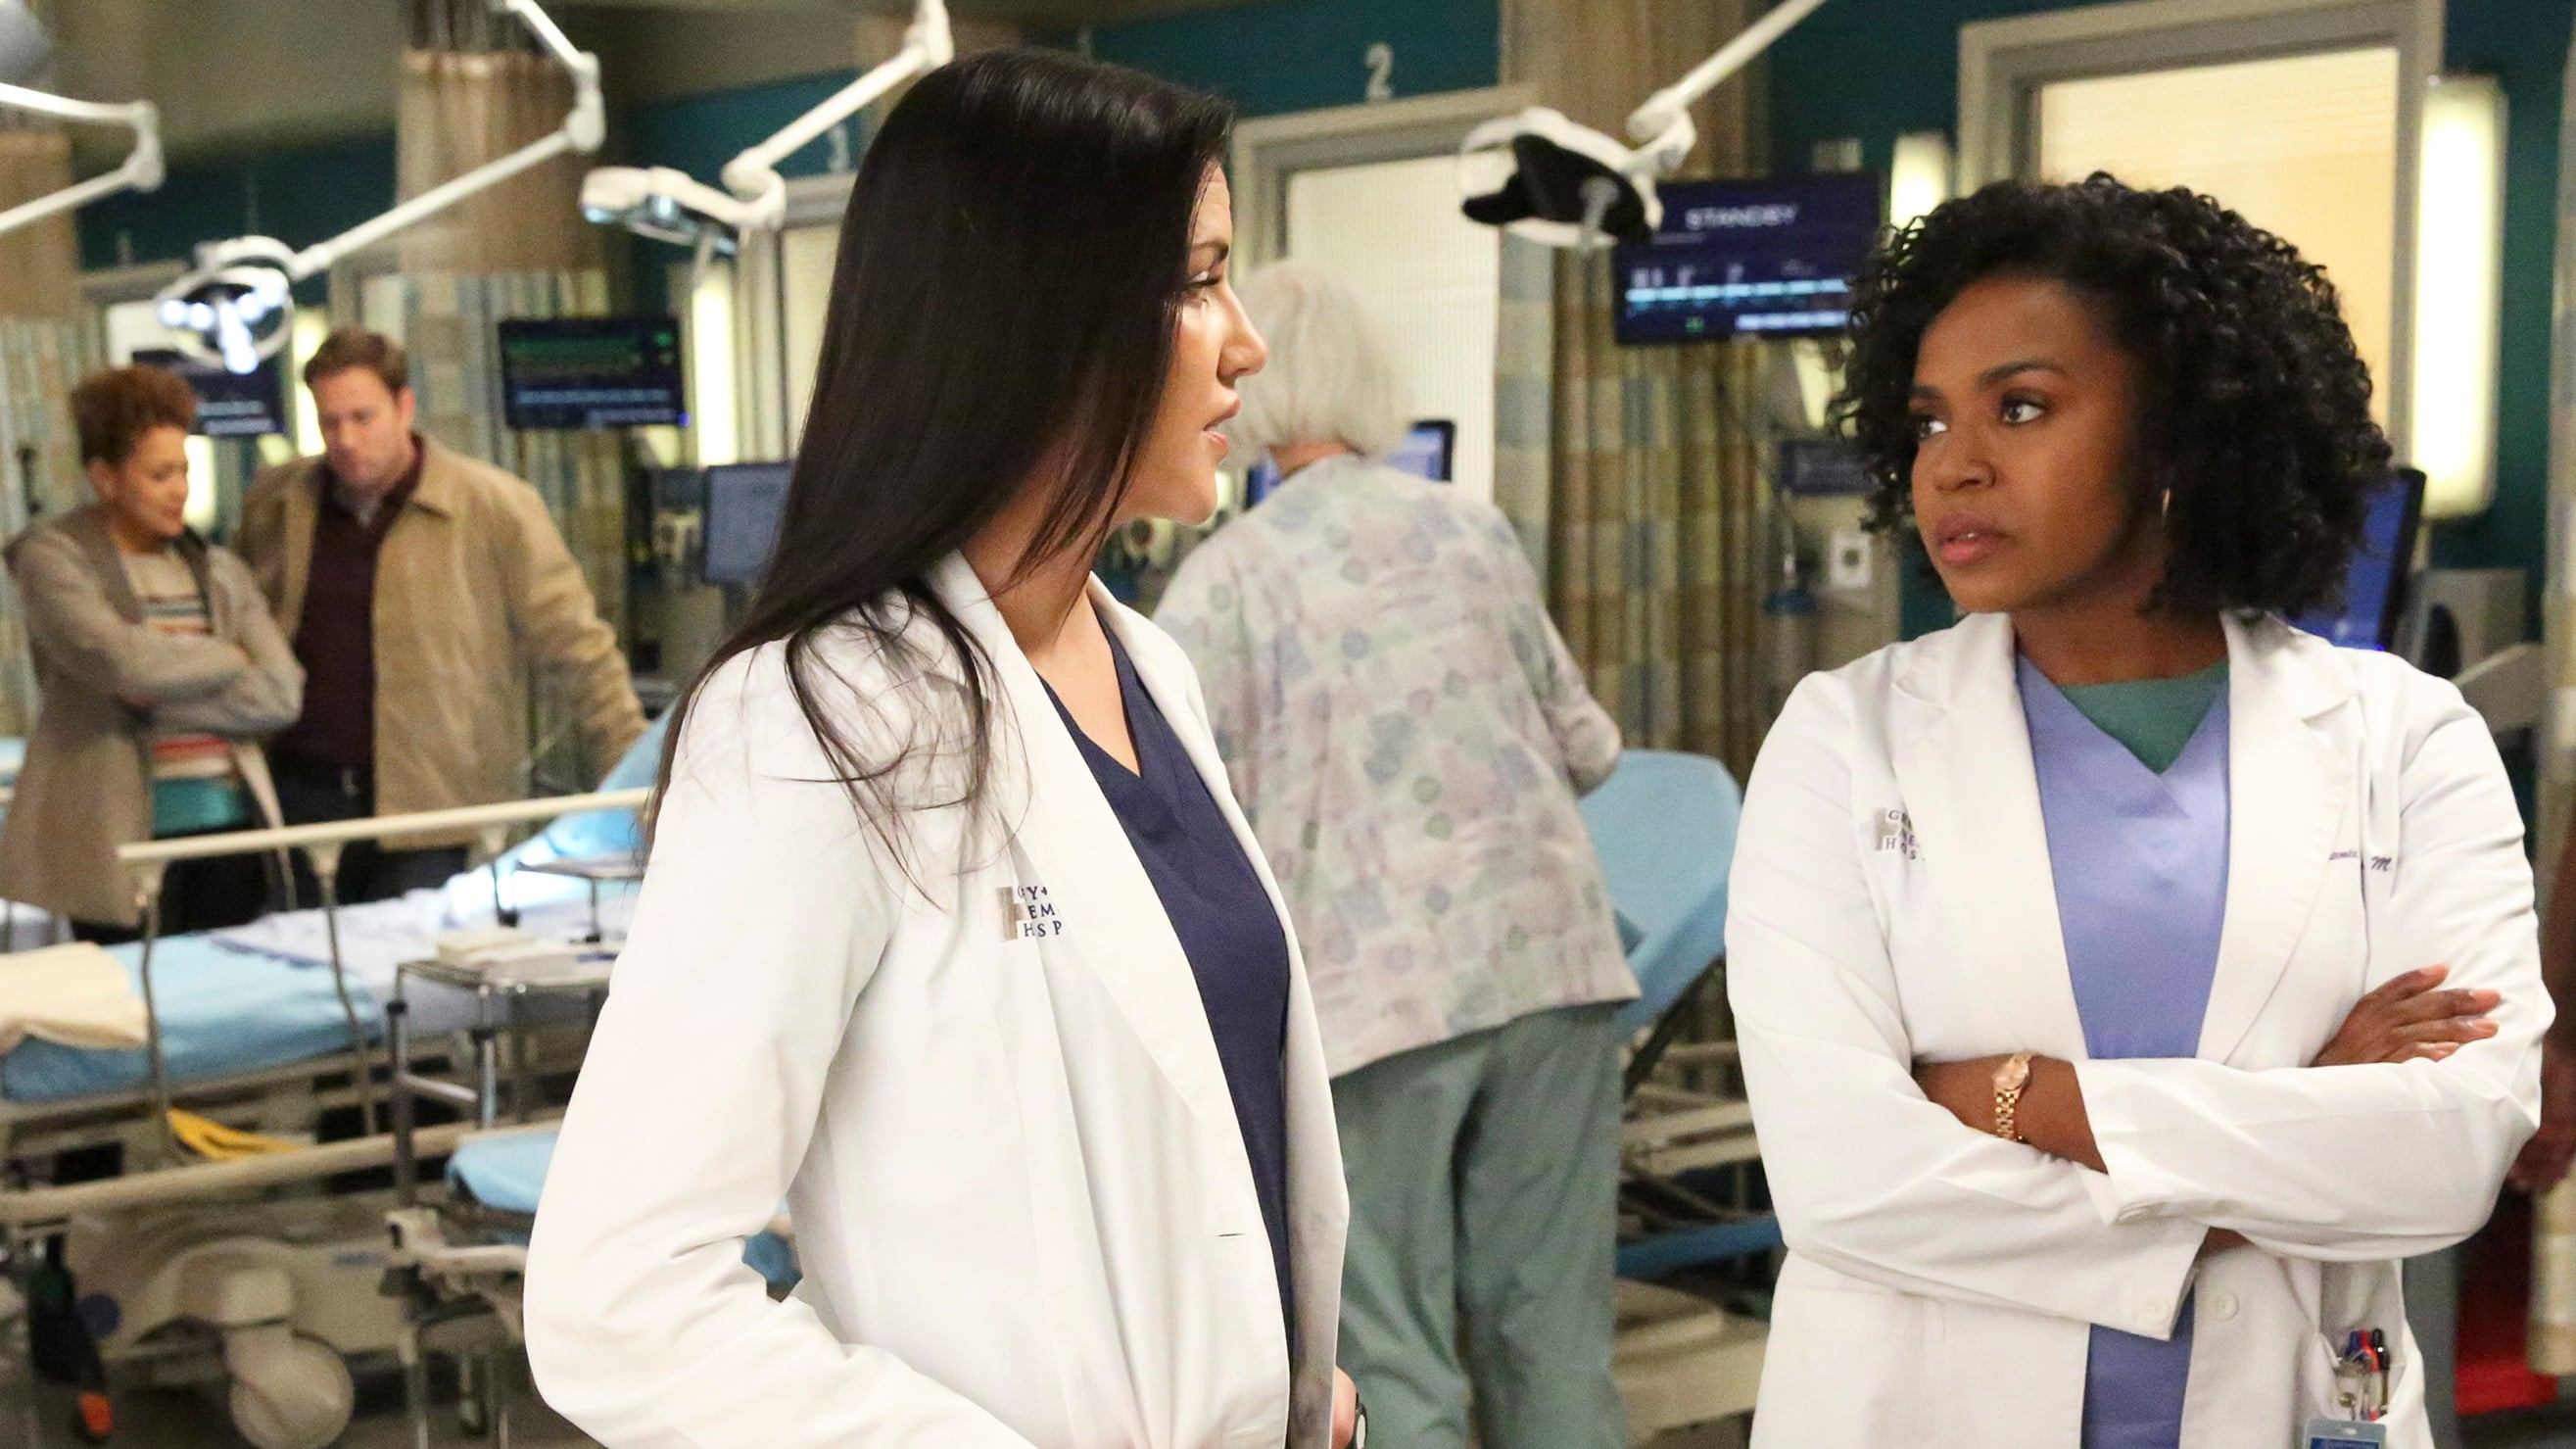 Grey's Anatomy - Season 13 Episode 13 : It Only Gets Much Worse